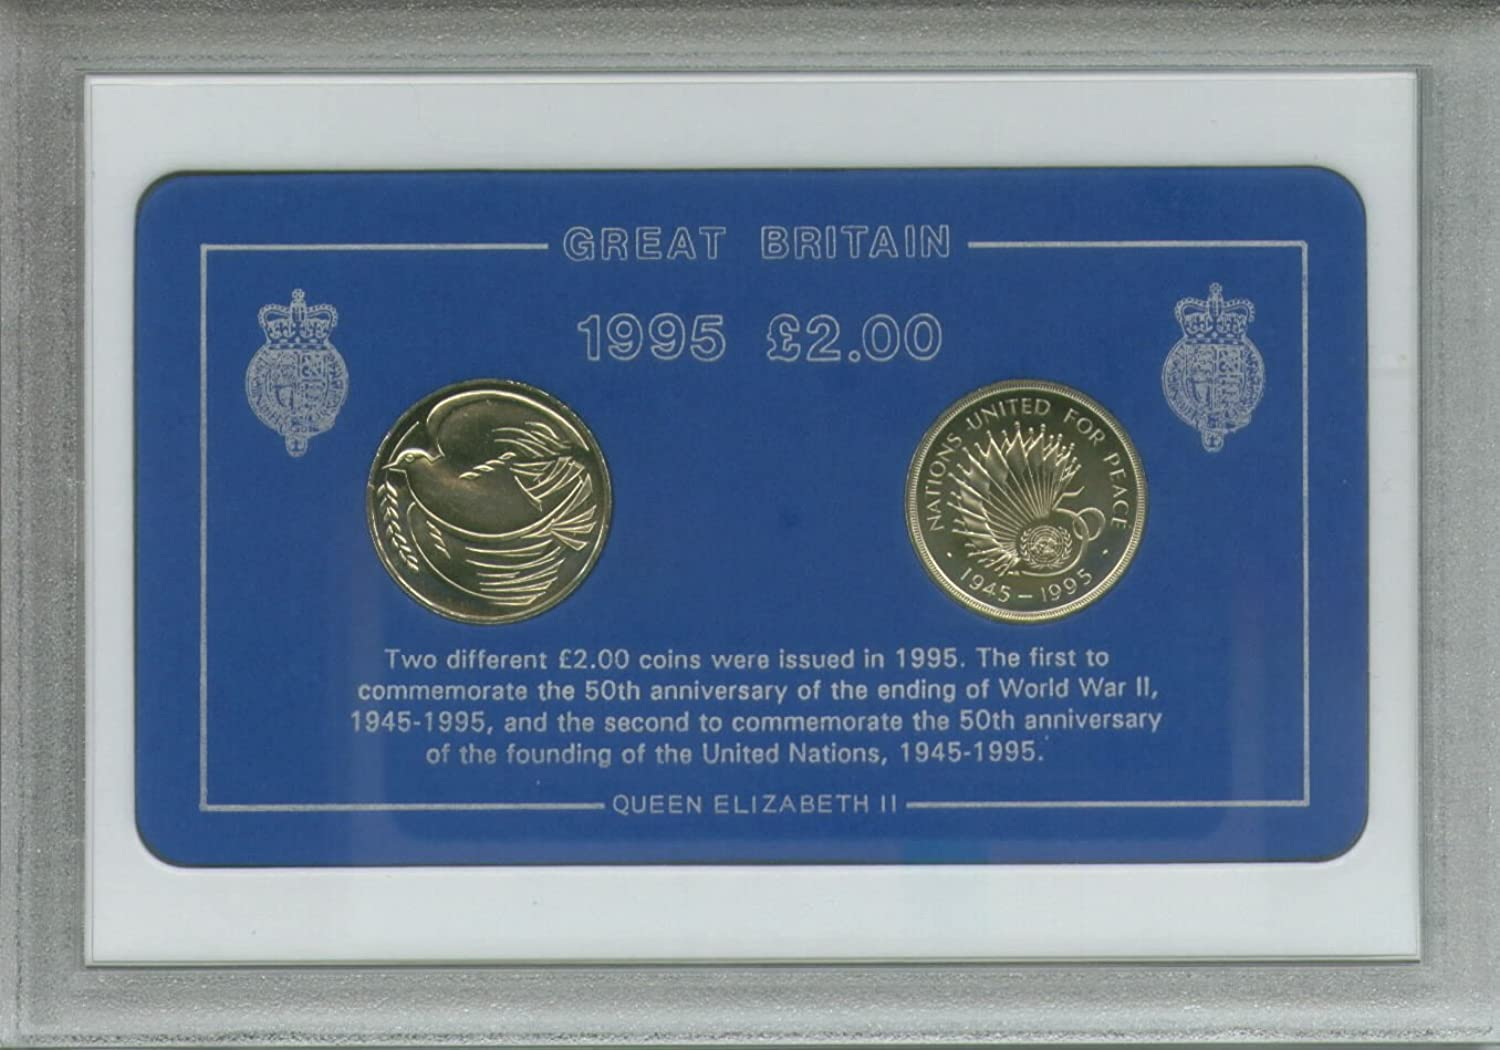 19451995 50th Anniversary of the End of WWII & Start of United Nations Commemorative £2 Coin Collector Gift Set